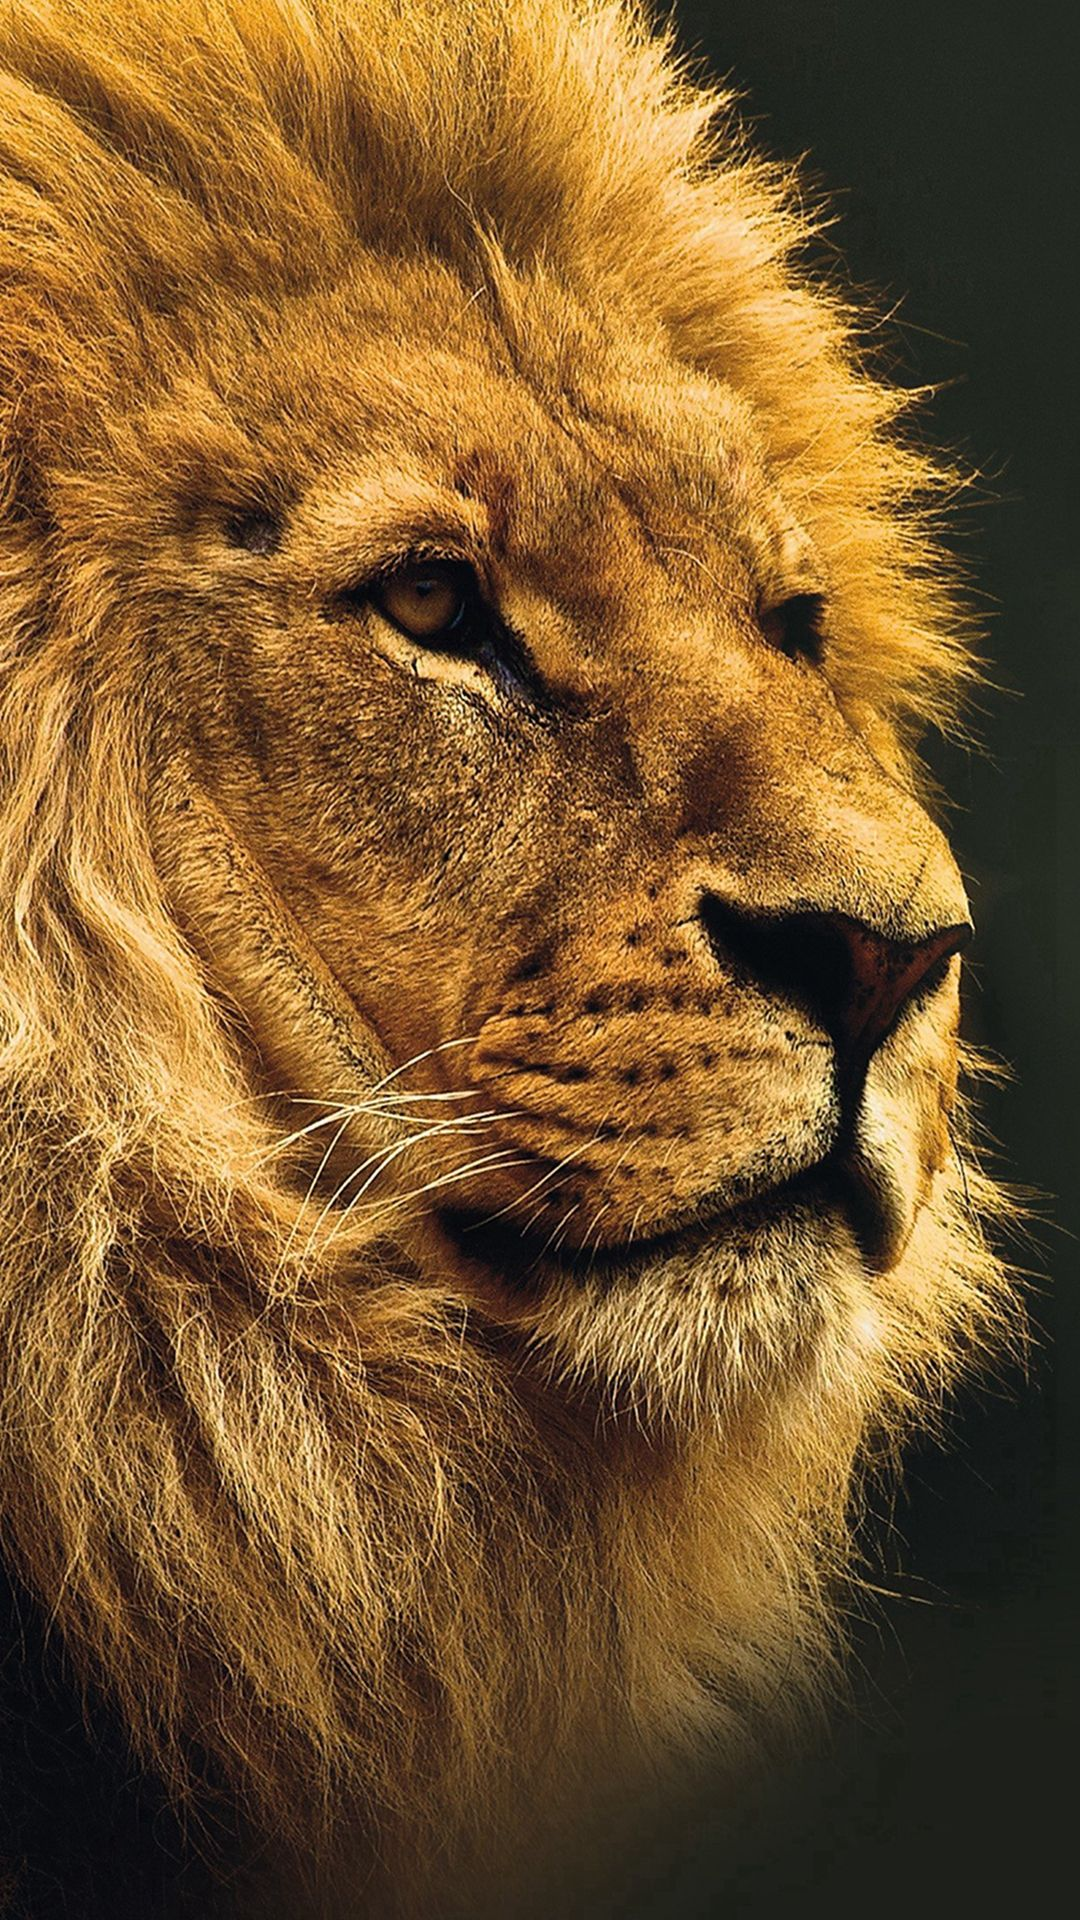 Wallpaper iphone lion - National Geographic Nature Animal Lion Yellow Iphone 6 Wallpaper